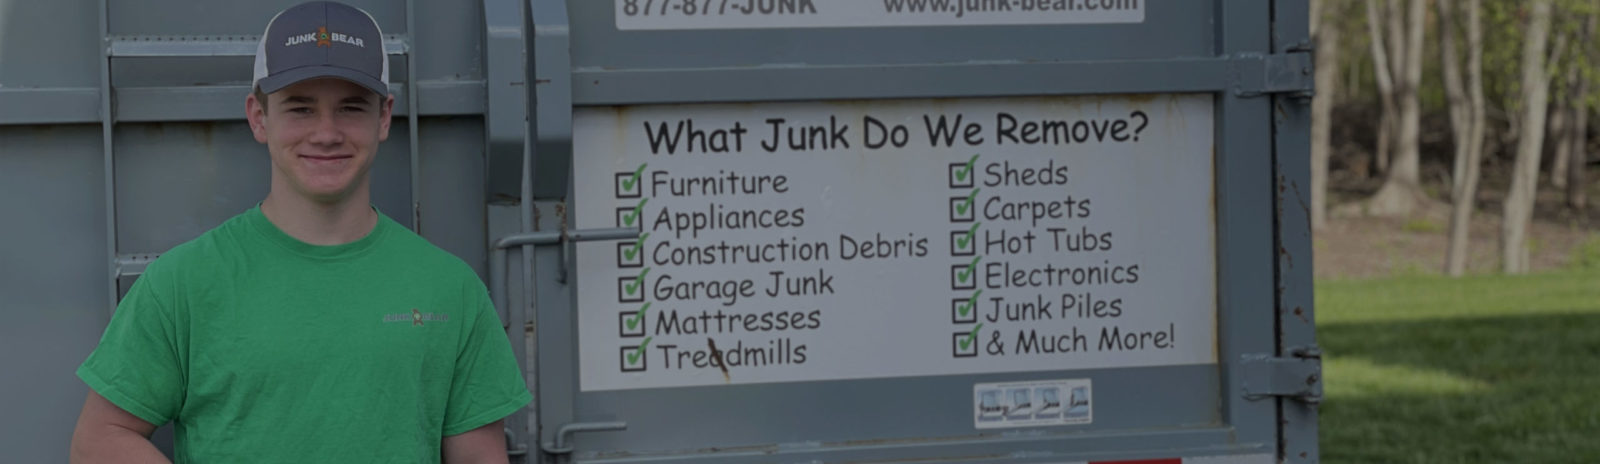 Junk Bear team member with what do we remove sign